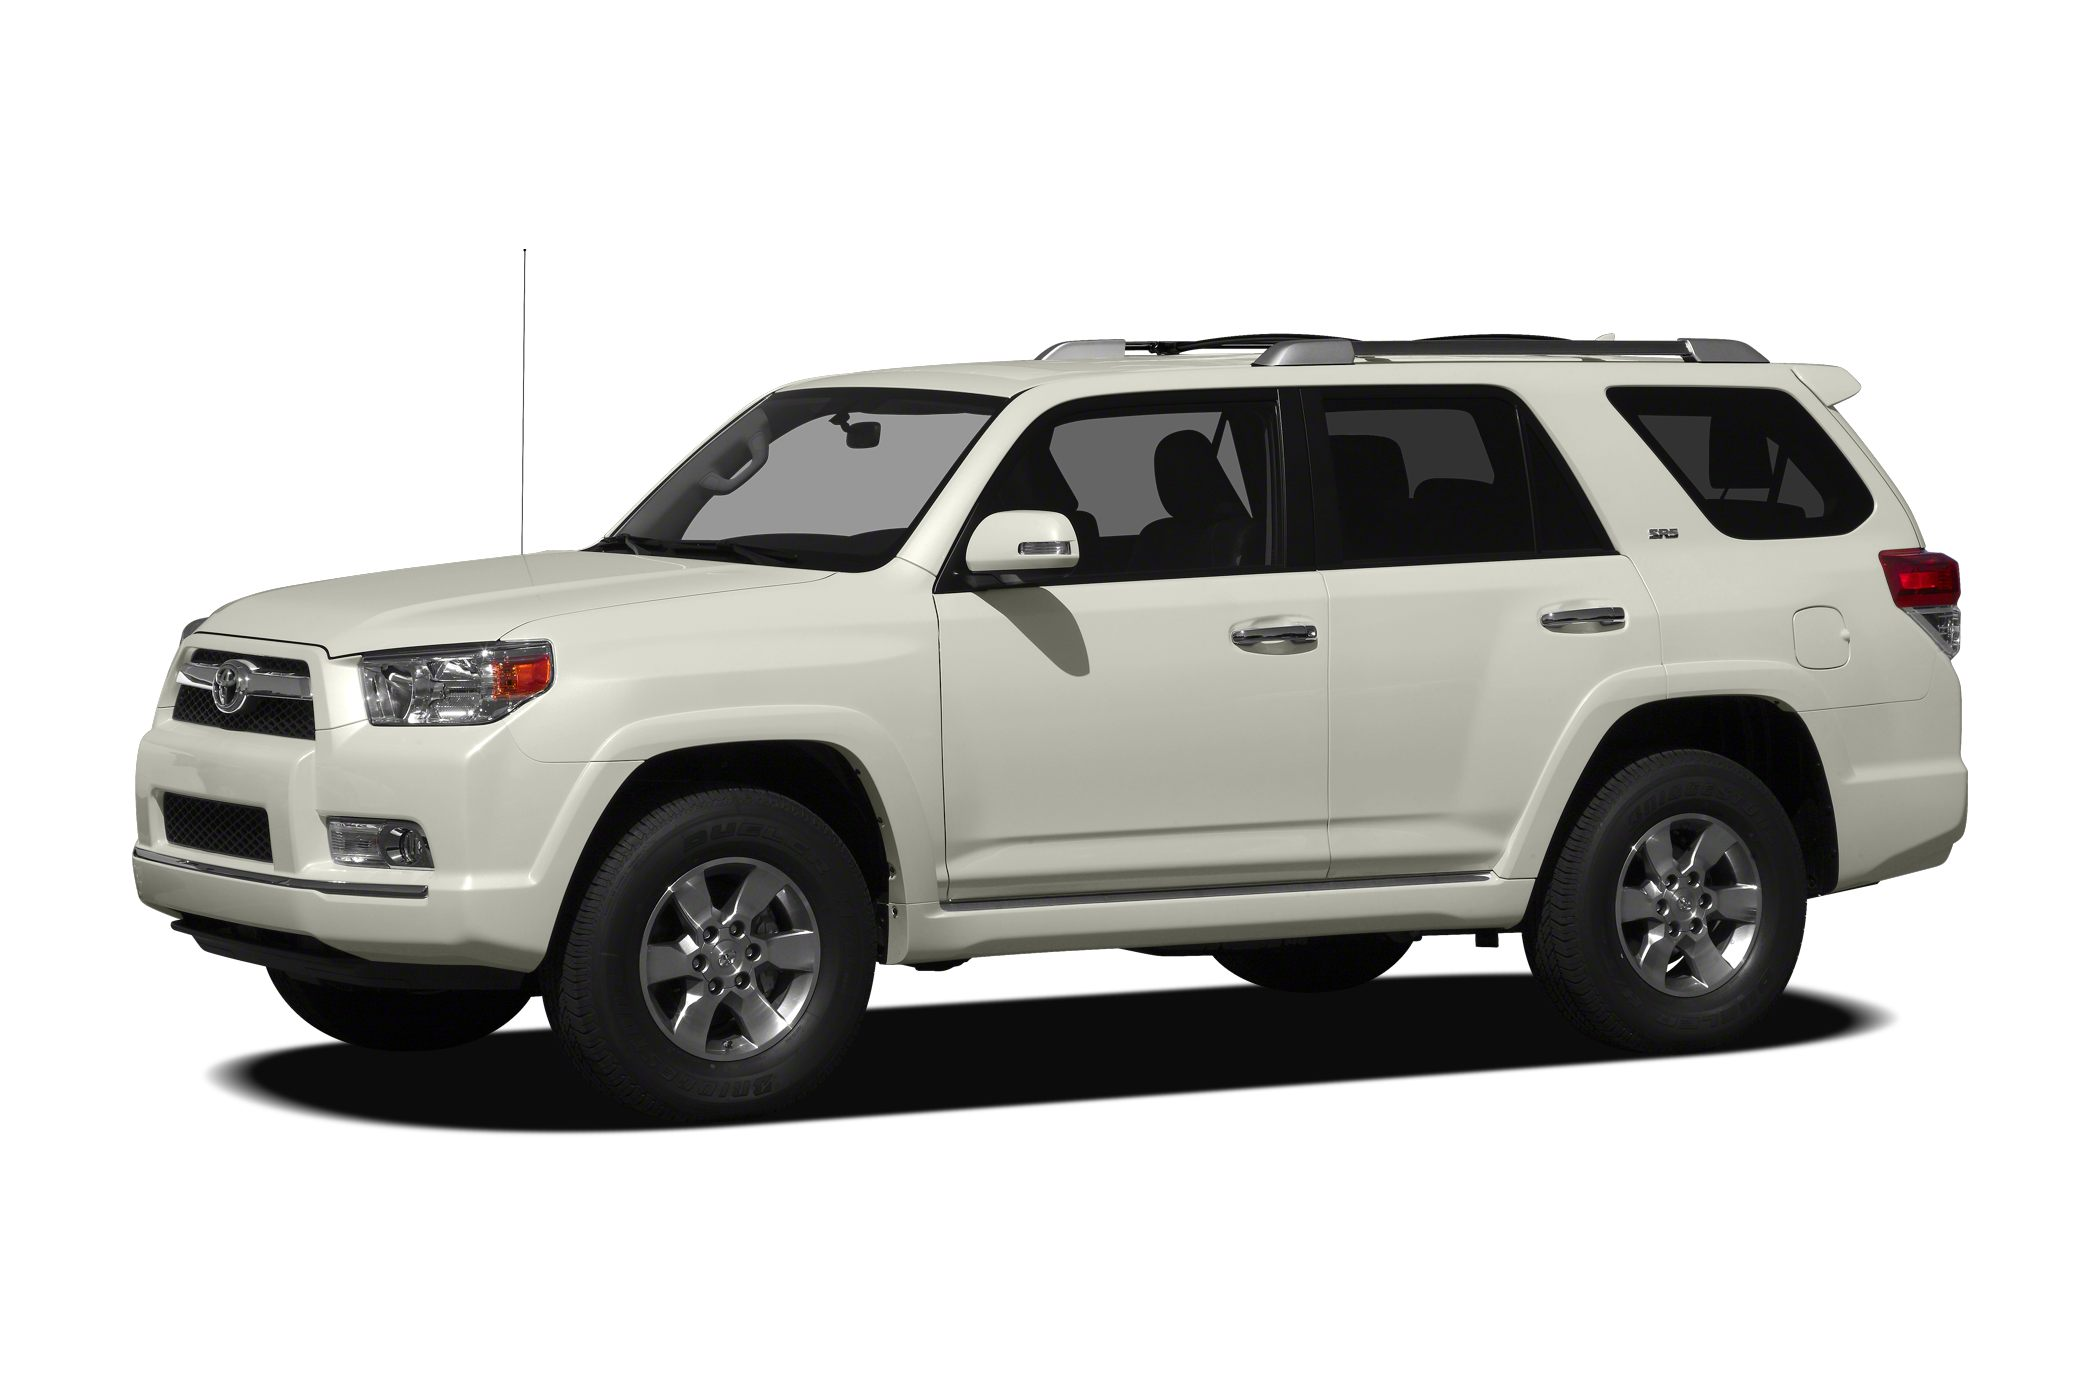 Toyota 4runner Trail >> 2012 Toyota 4runner Trail 4dr 4x4 Pictures